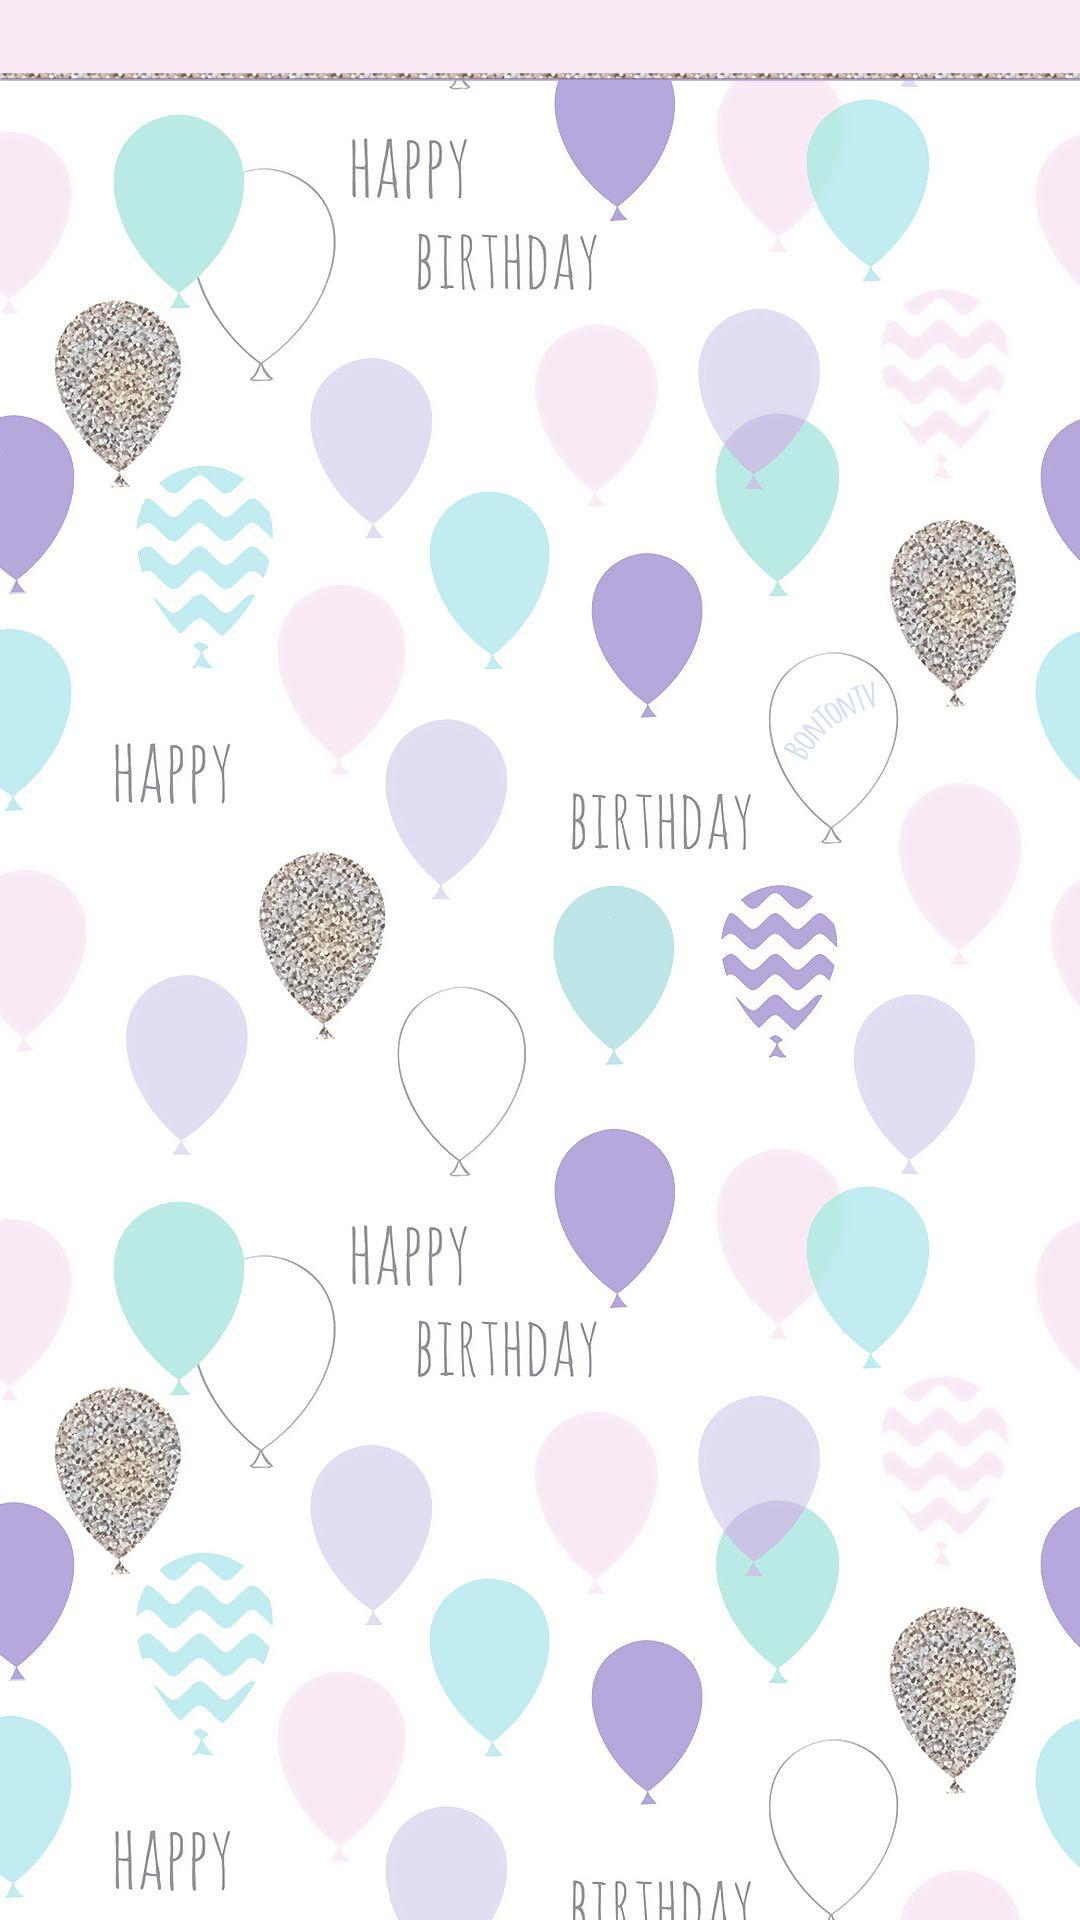 Happy Birthday Aesthetic Wallpapers - Wallpaper Cave